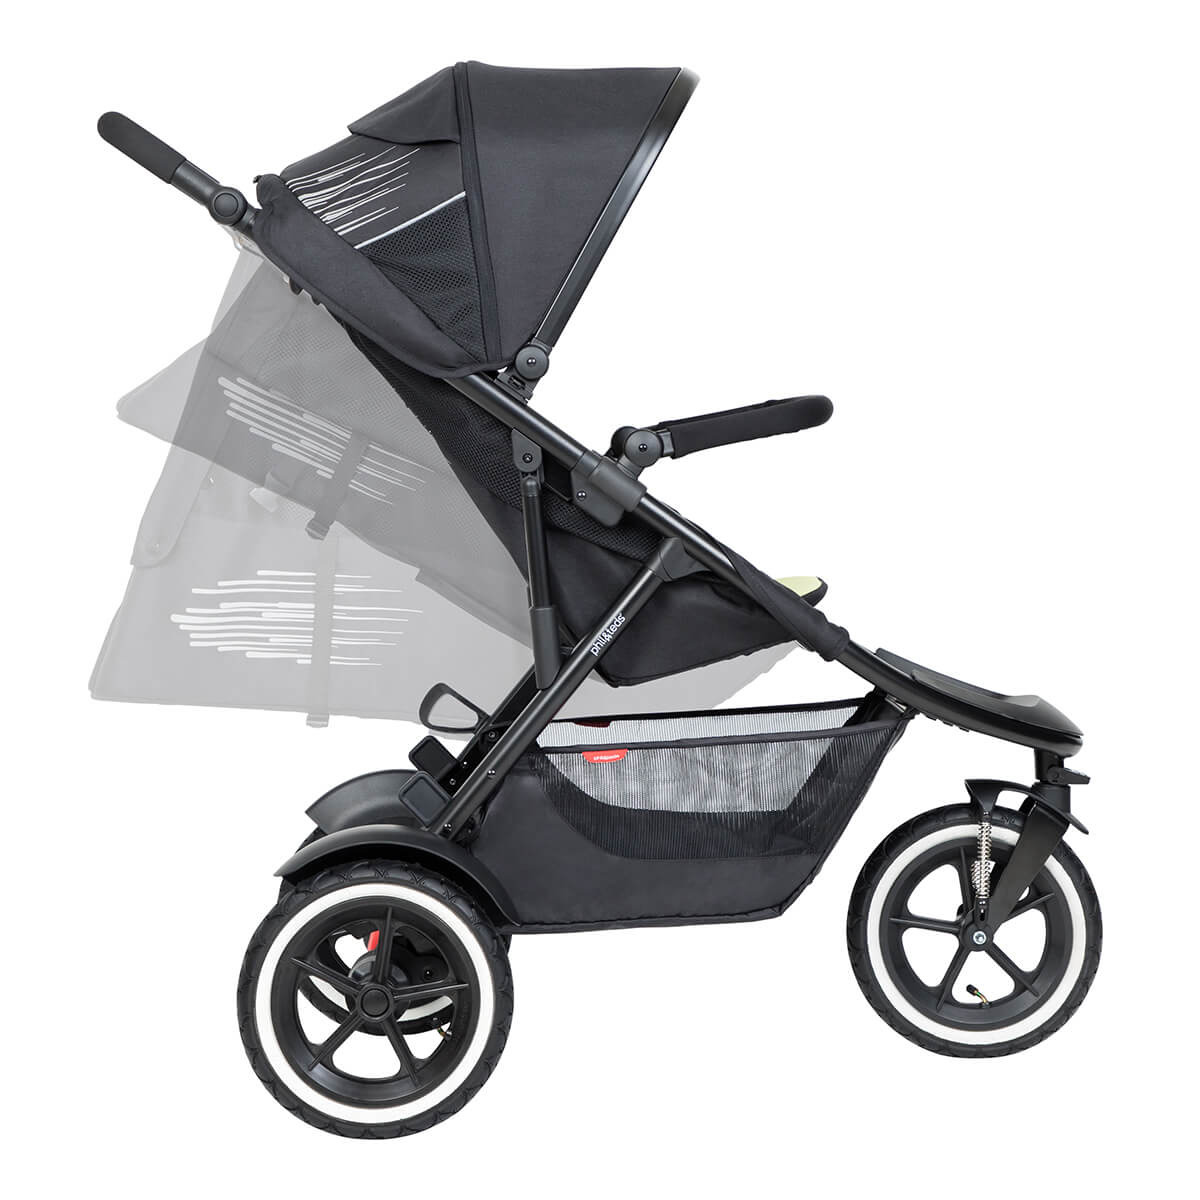 https://cdn.accentuate.io/4509866524769/19793939267754/philteds-sport-buggy-can-recline-in-multiple-angles-including-full-recline-for-newborn-baby-v1626485300647.jpg?1200x1200